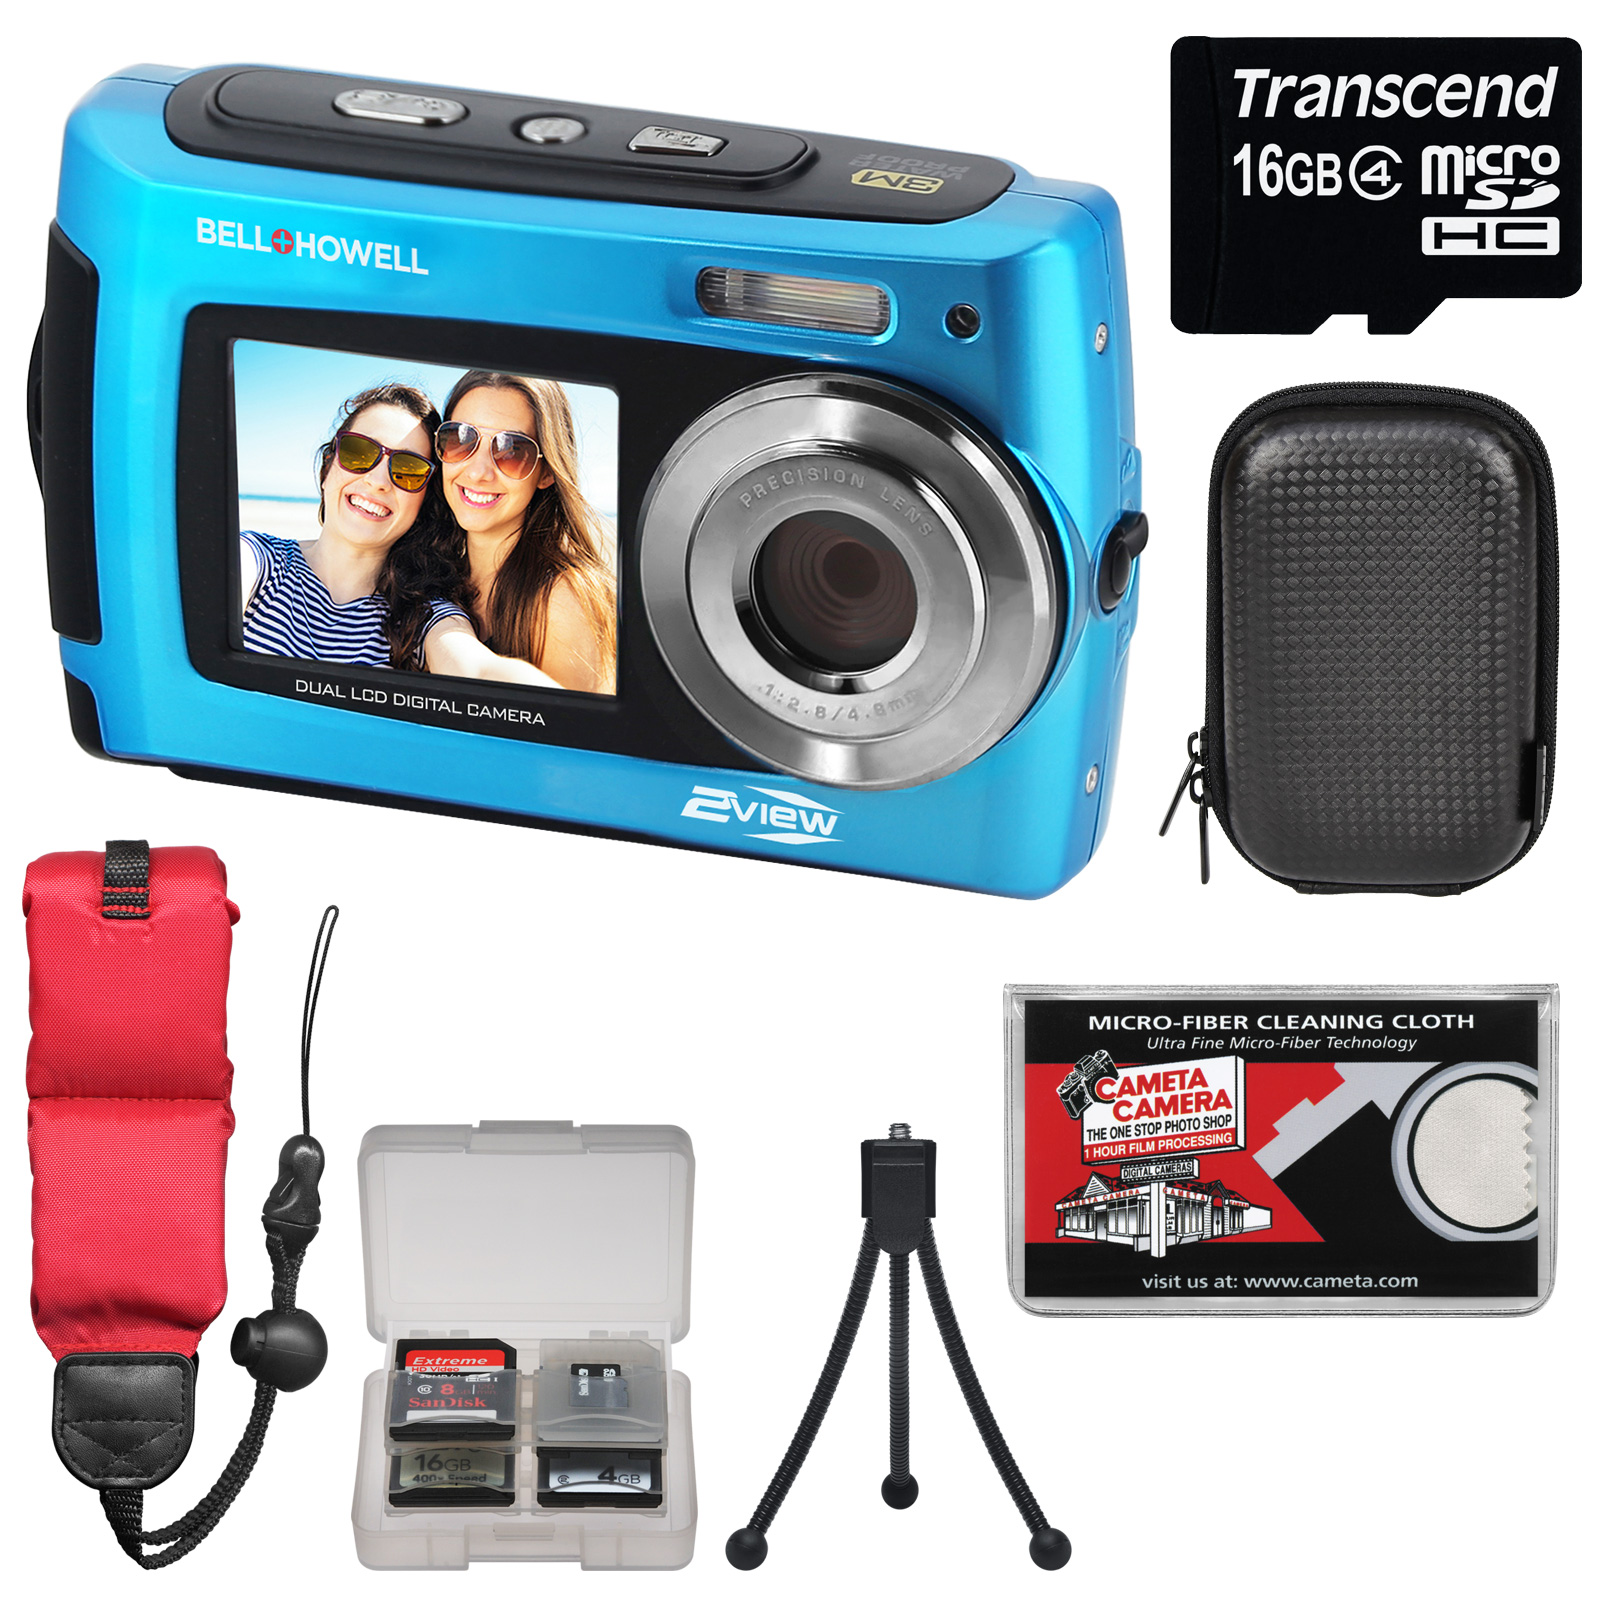 Bell & Howell 2VIEW18 HD Dual Screen Waterproof Digital Camera (Blue) with 16GB Card + Case + Floating Strap + Tripod + Kit